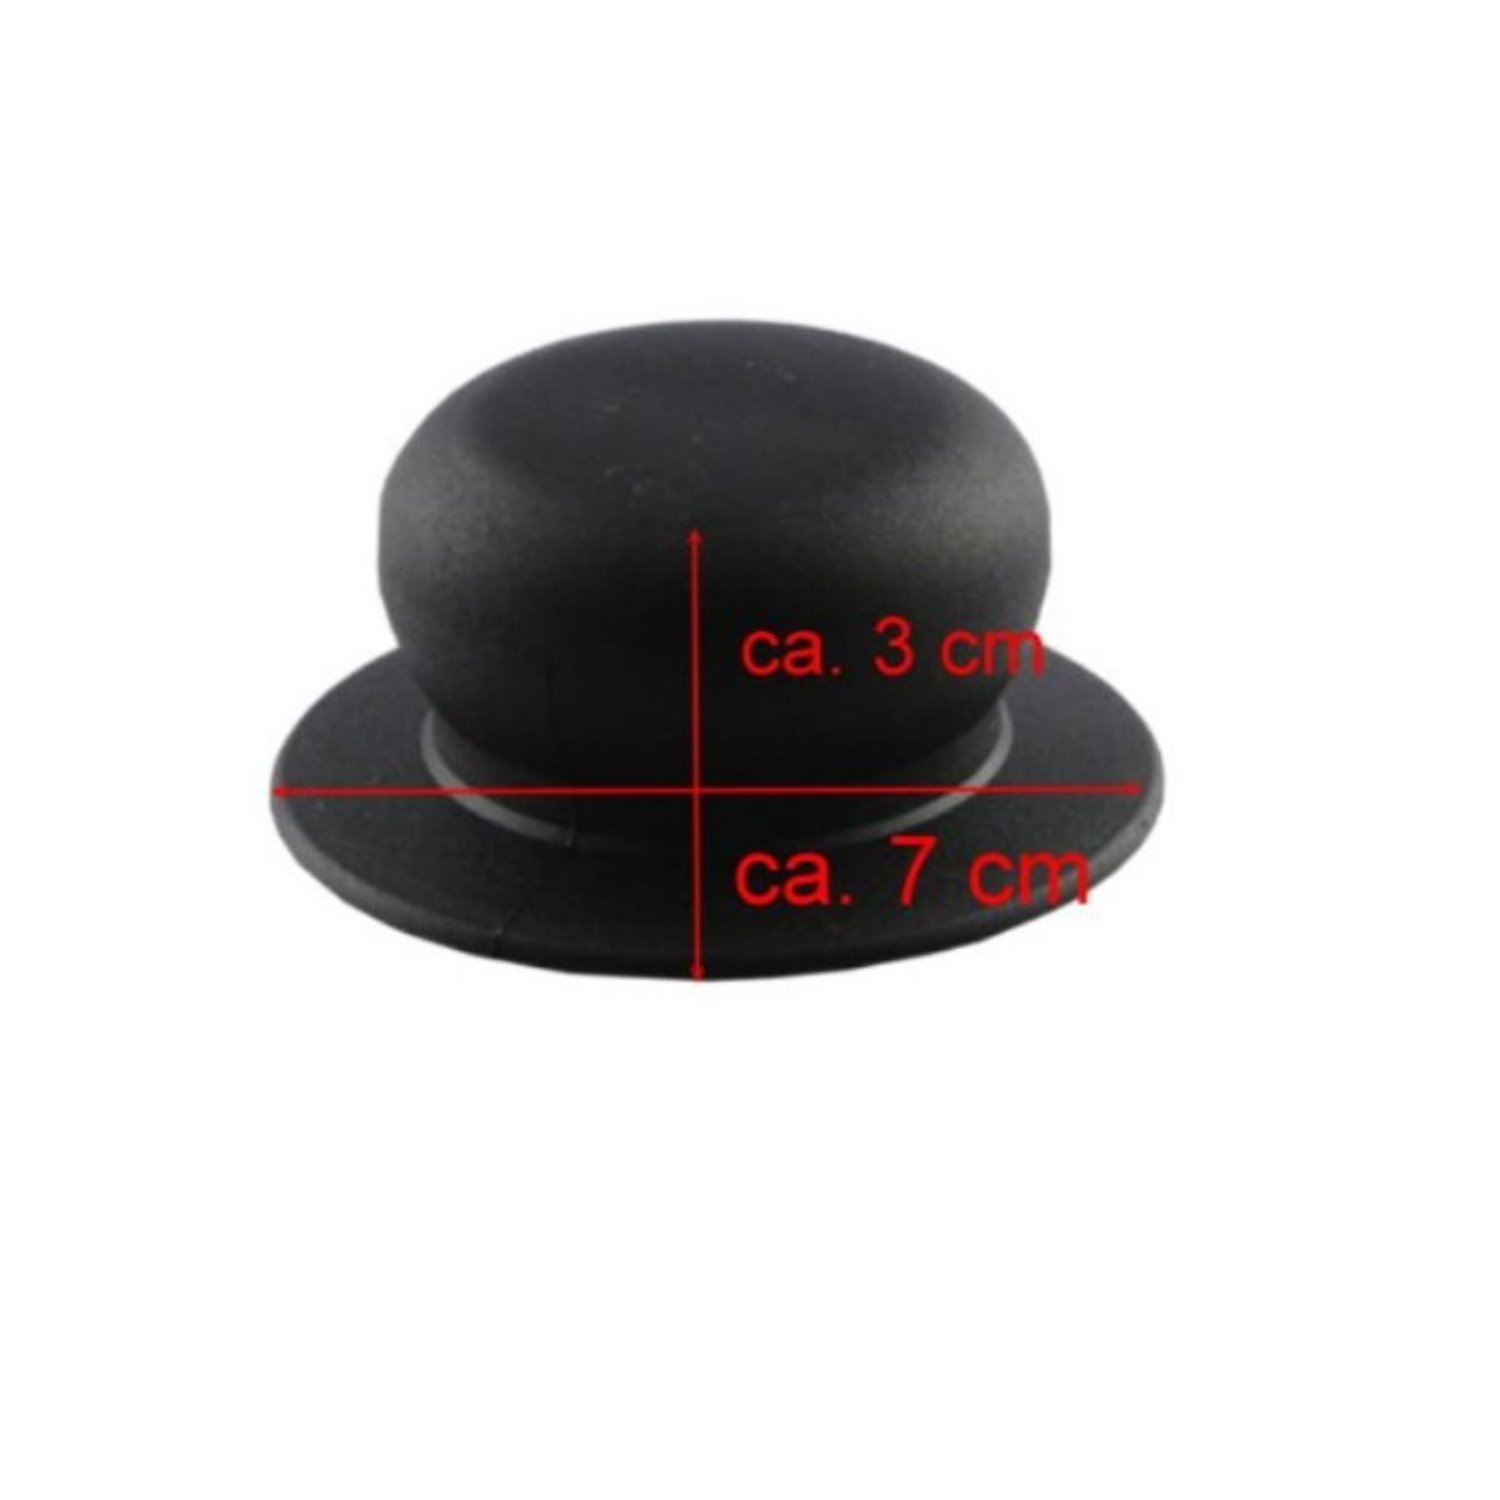 Kerafactum Replacement Handles for 3 Glas Pot Pans Lid Knob Replacement Part Matt Black and Colour 7 cm Diameter universal